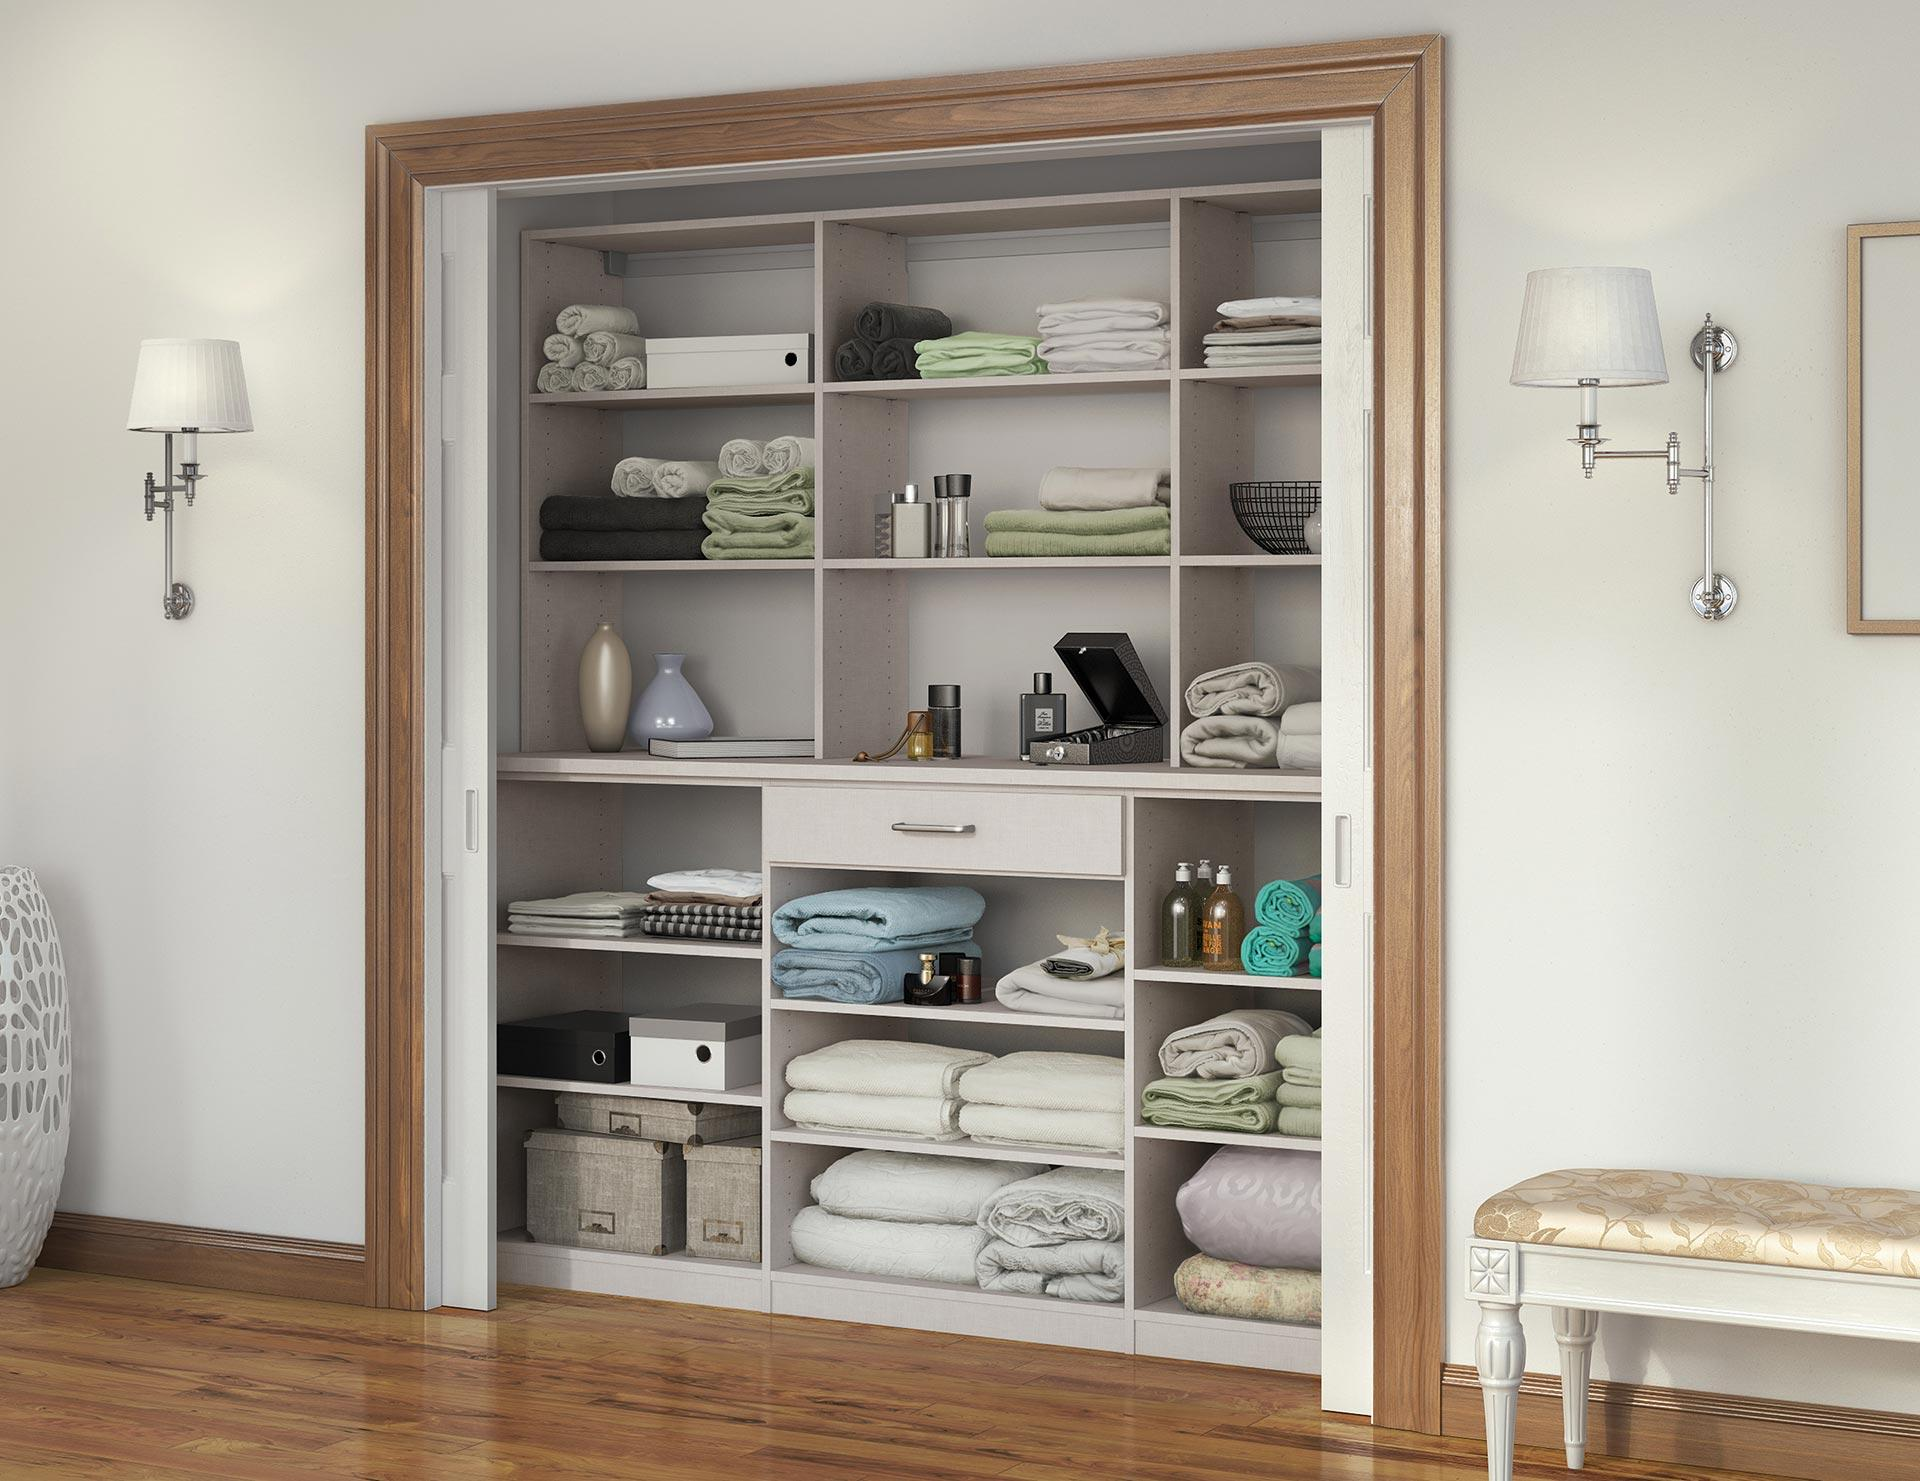 Cuarto De Lavado California Closets